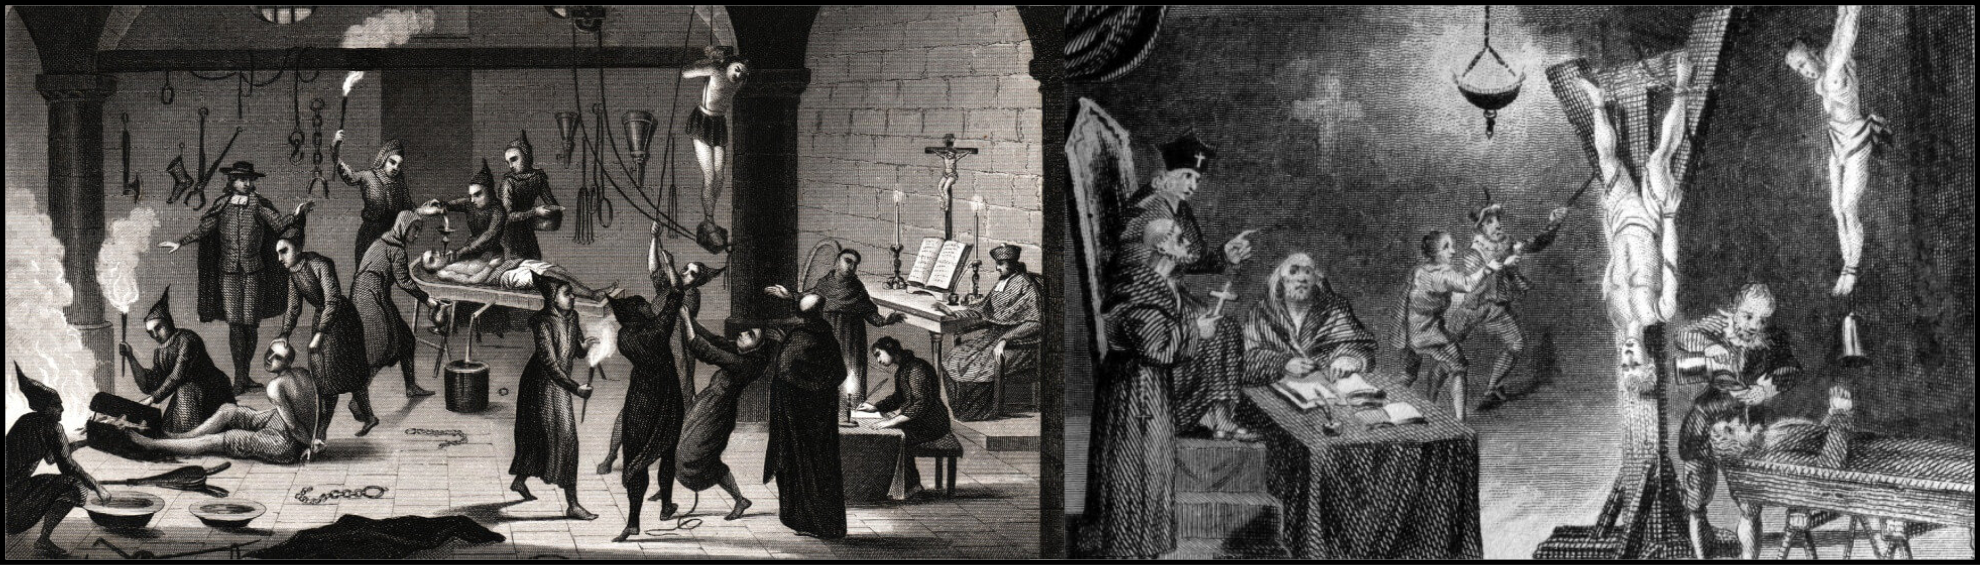 Catholic Inquisition